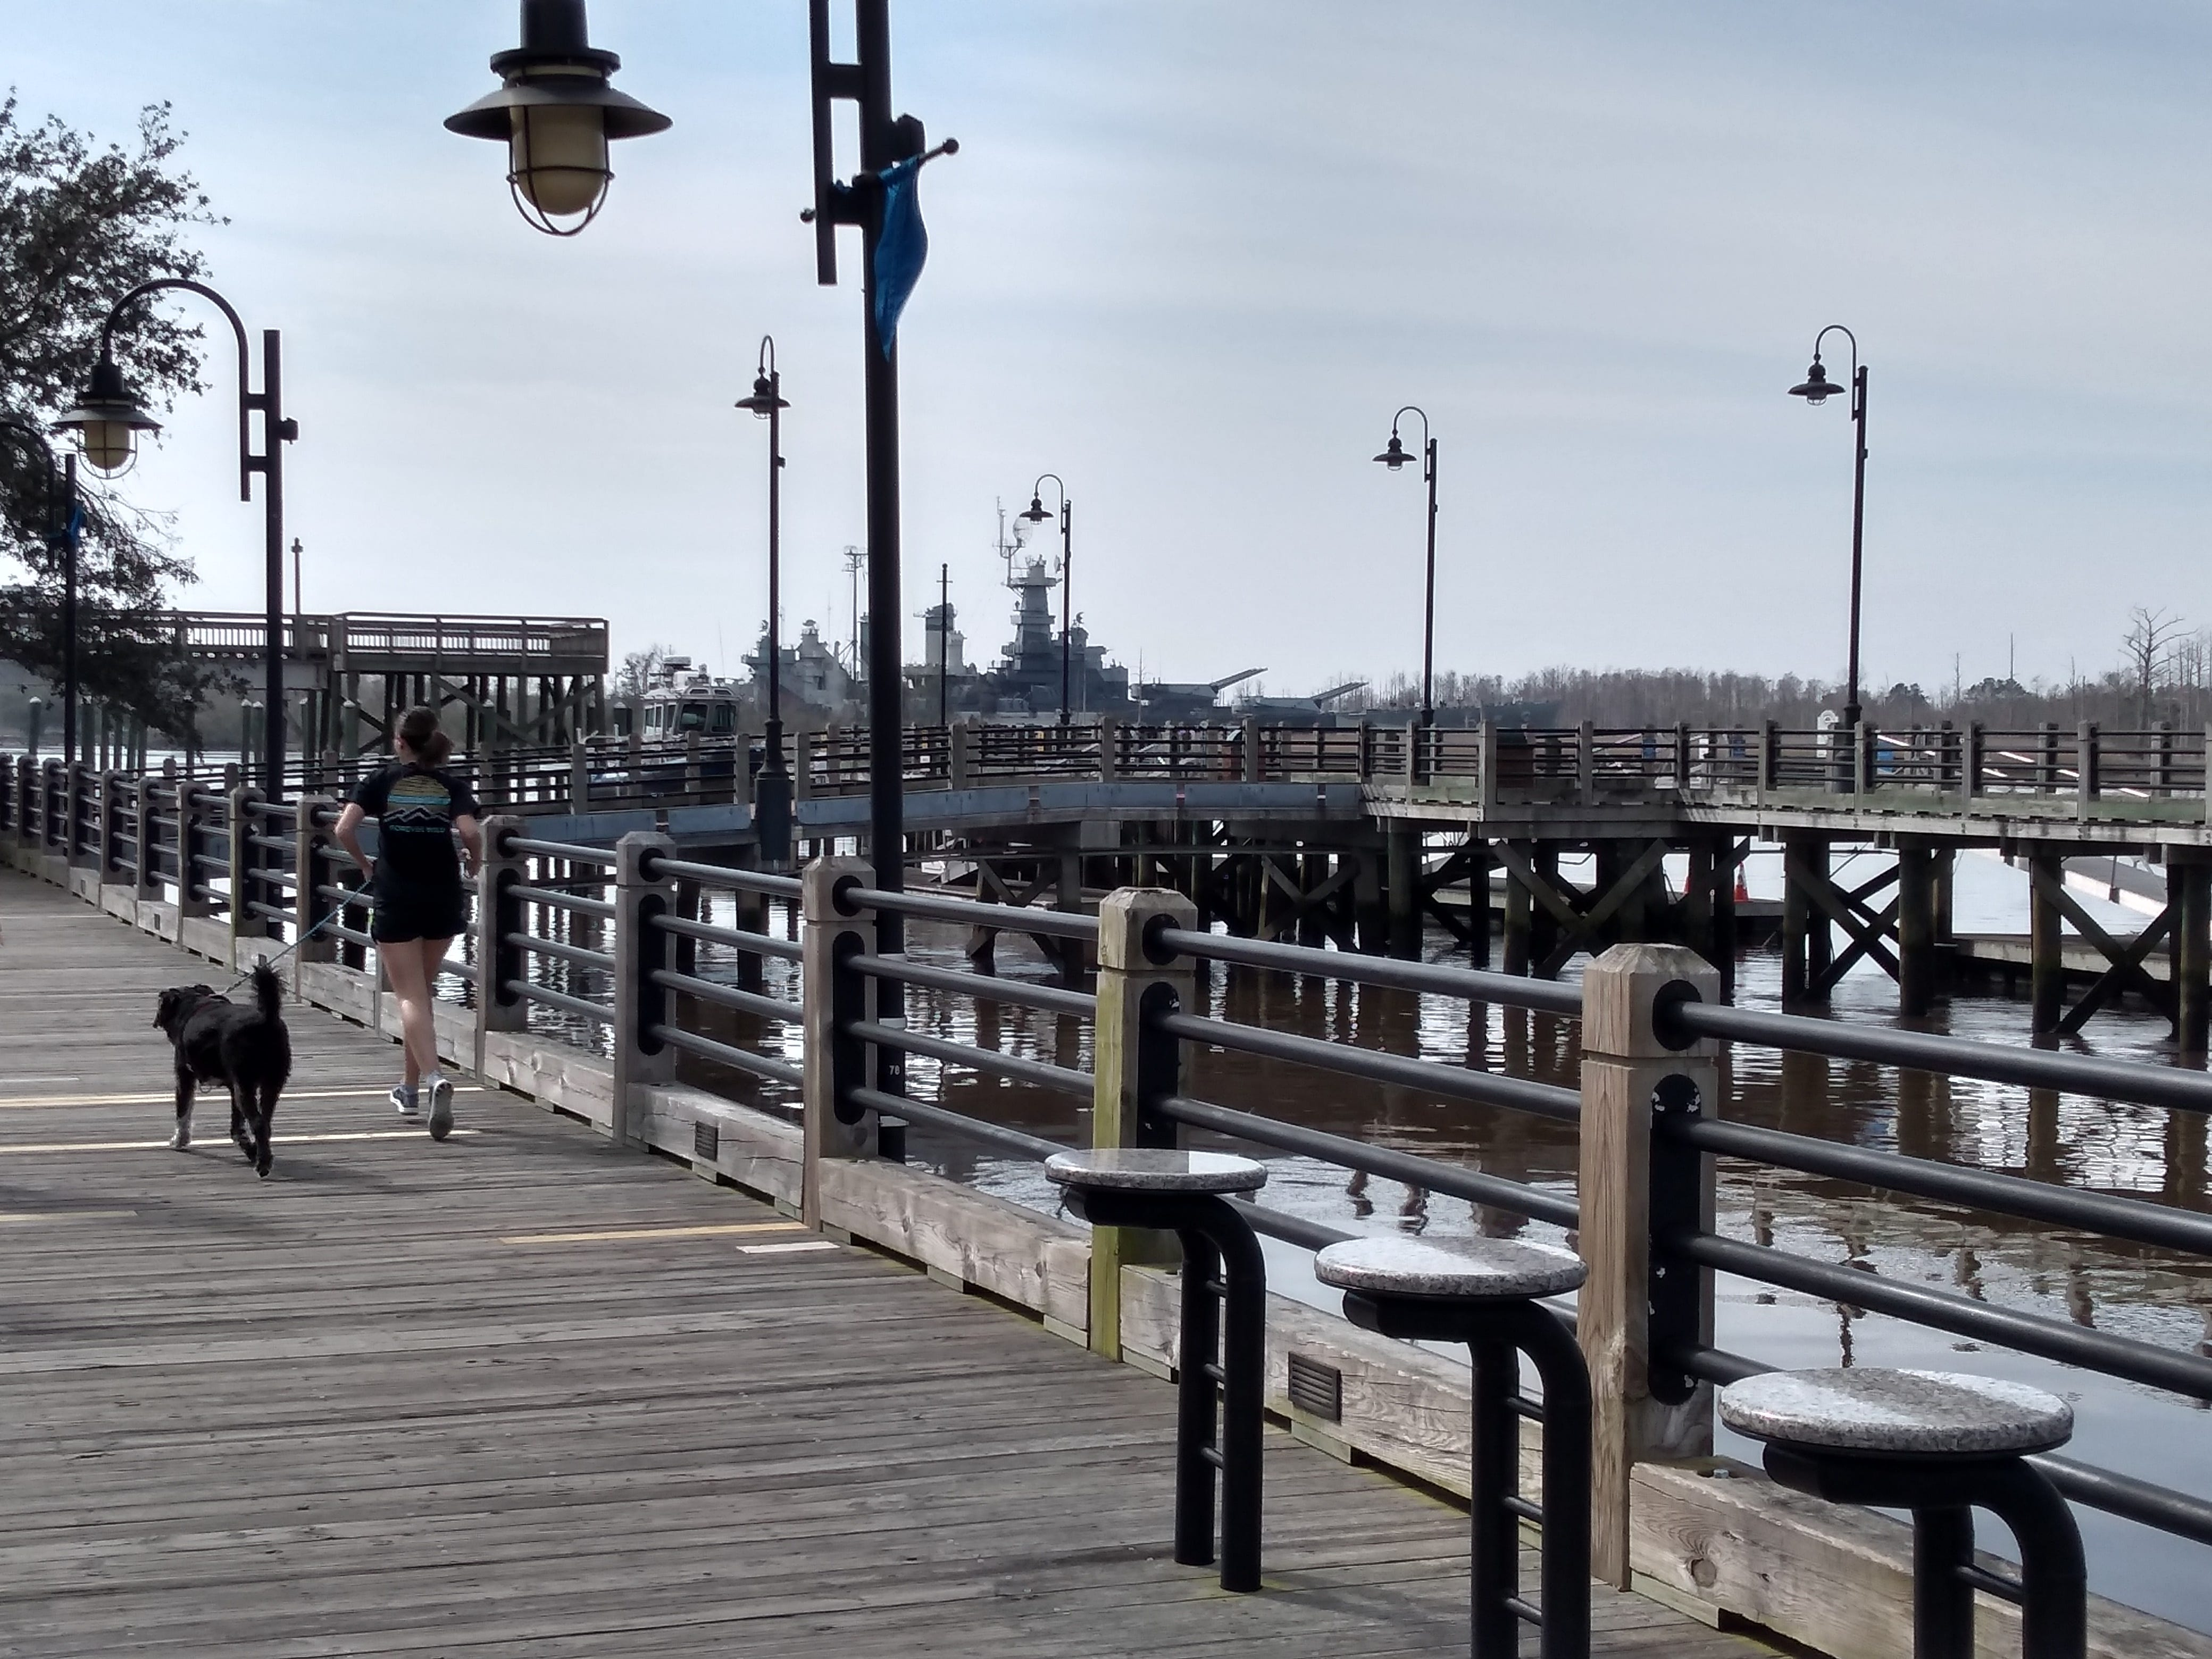 The riverwalk along the Cape Fear River is 1.7 miles long.